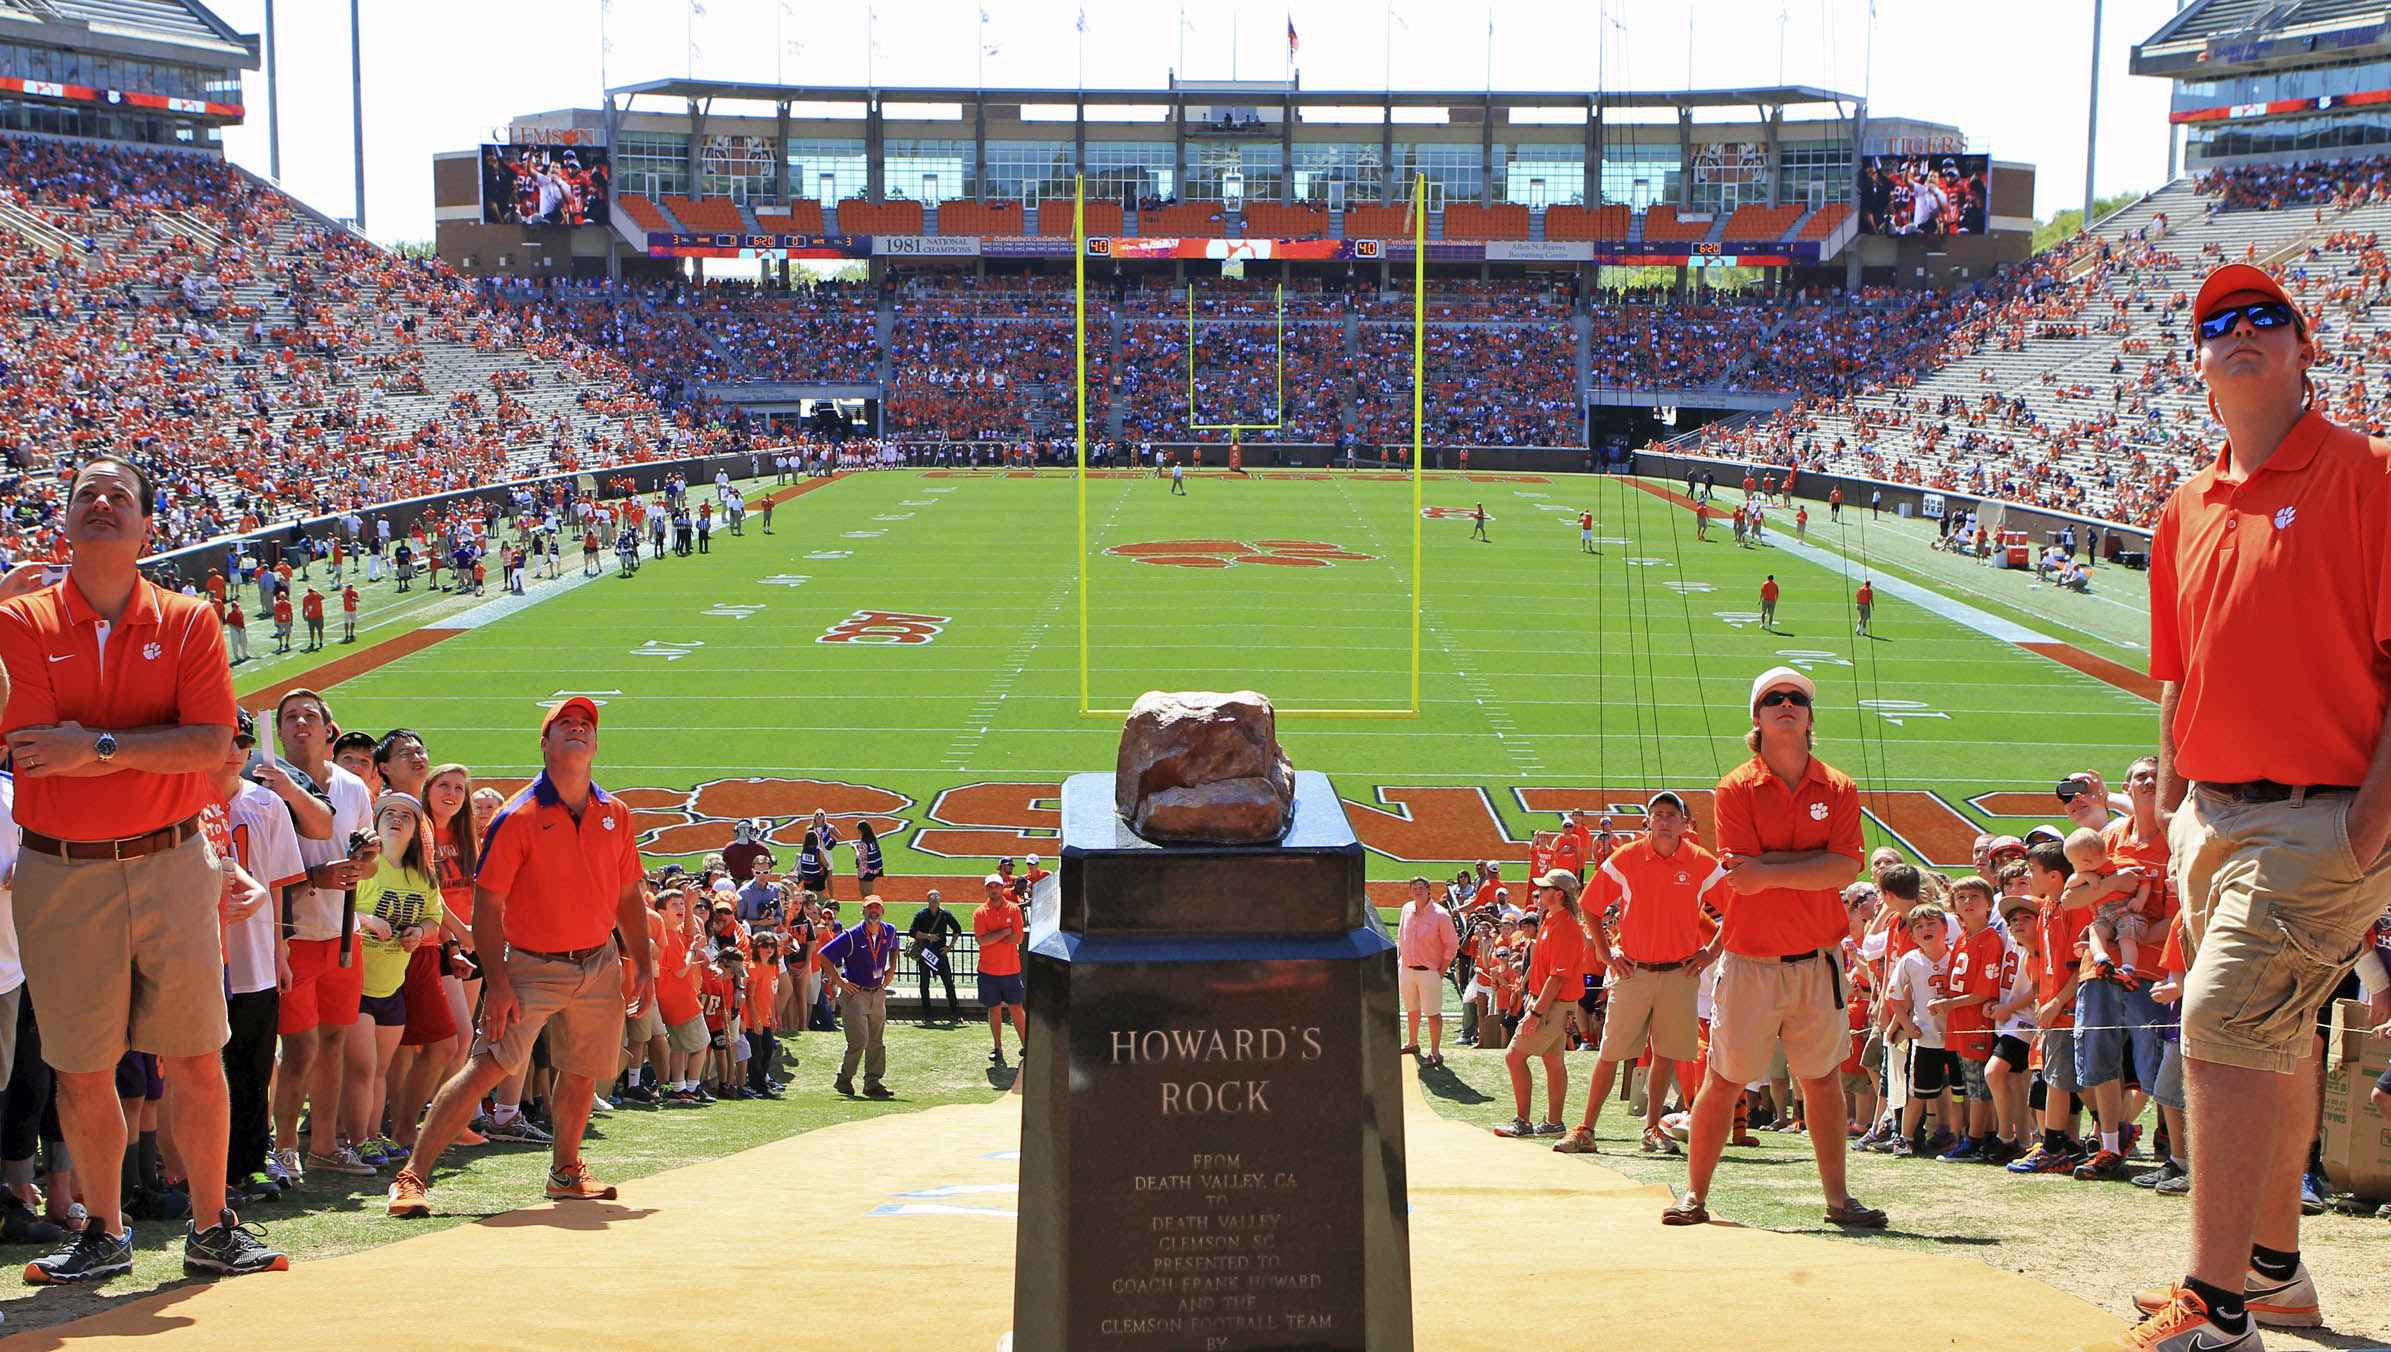 College Traditions Clemson University S Howard S Rock College Tips Blogs It S Nacho Howard's rock is a large piece of quartzite that is displayed in clemson university's memorial stadium. college traditions clemson university